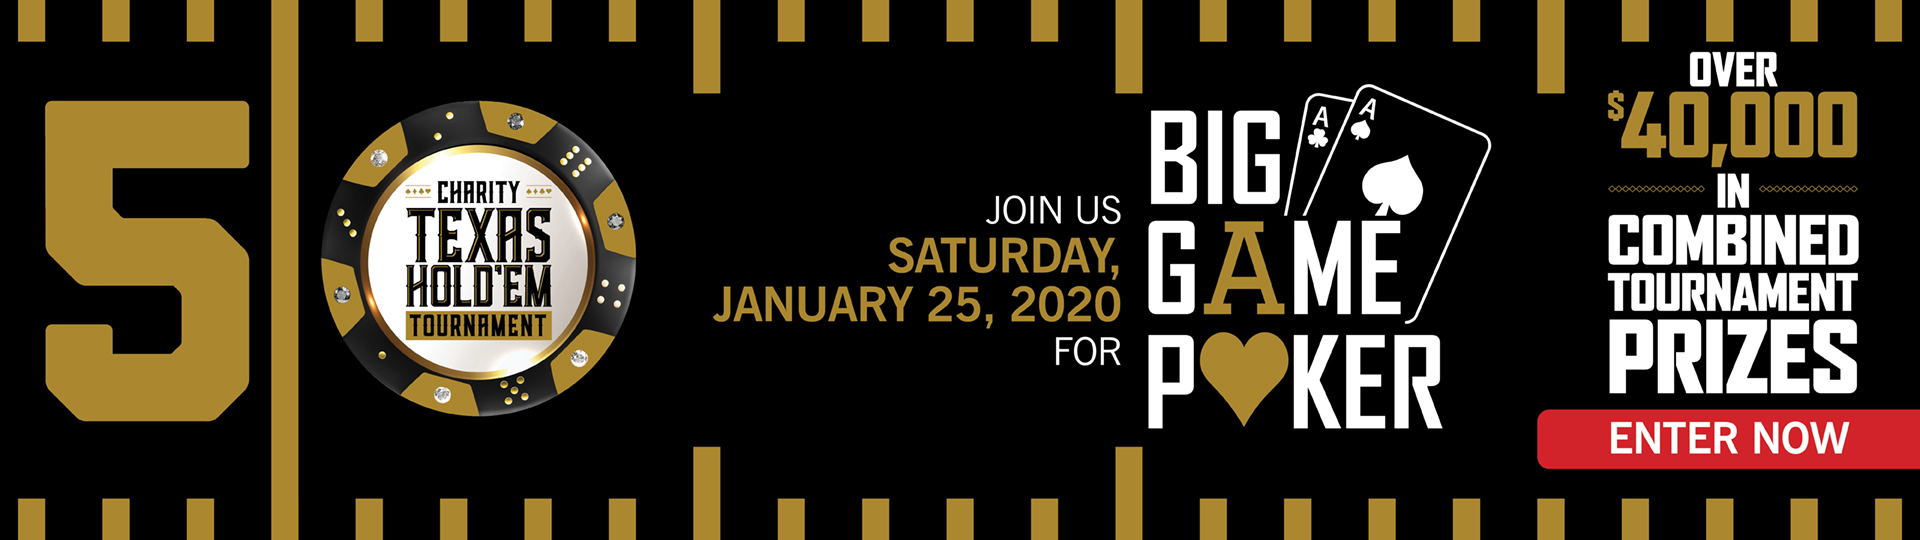 big game poker desktop banner